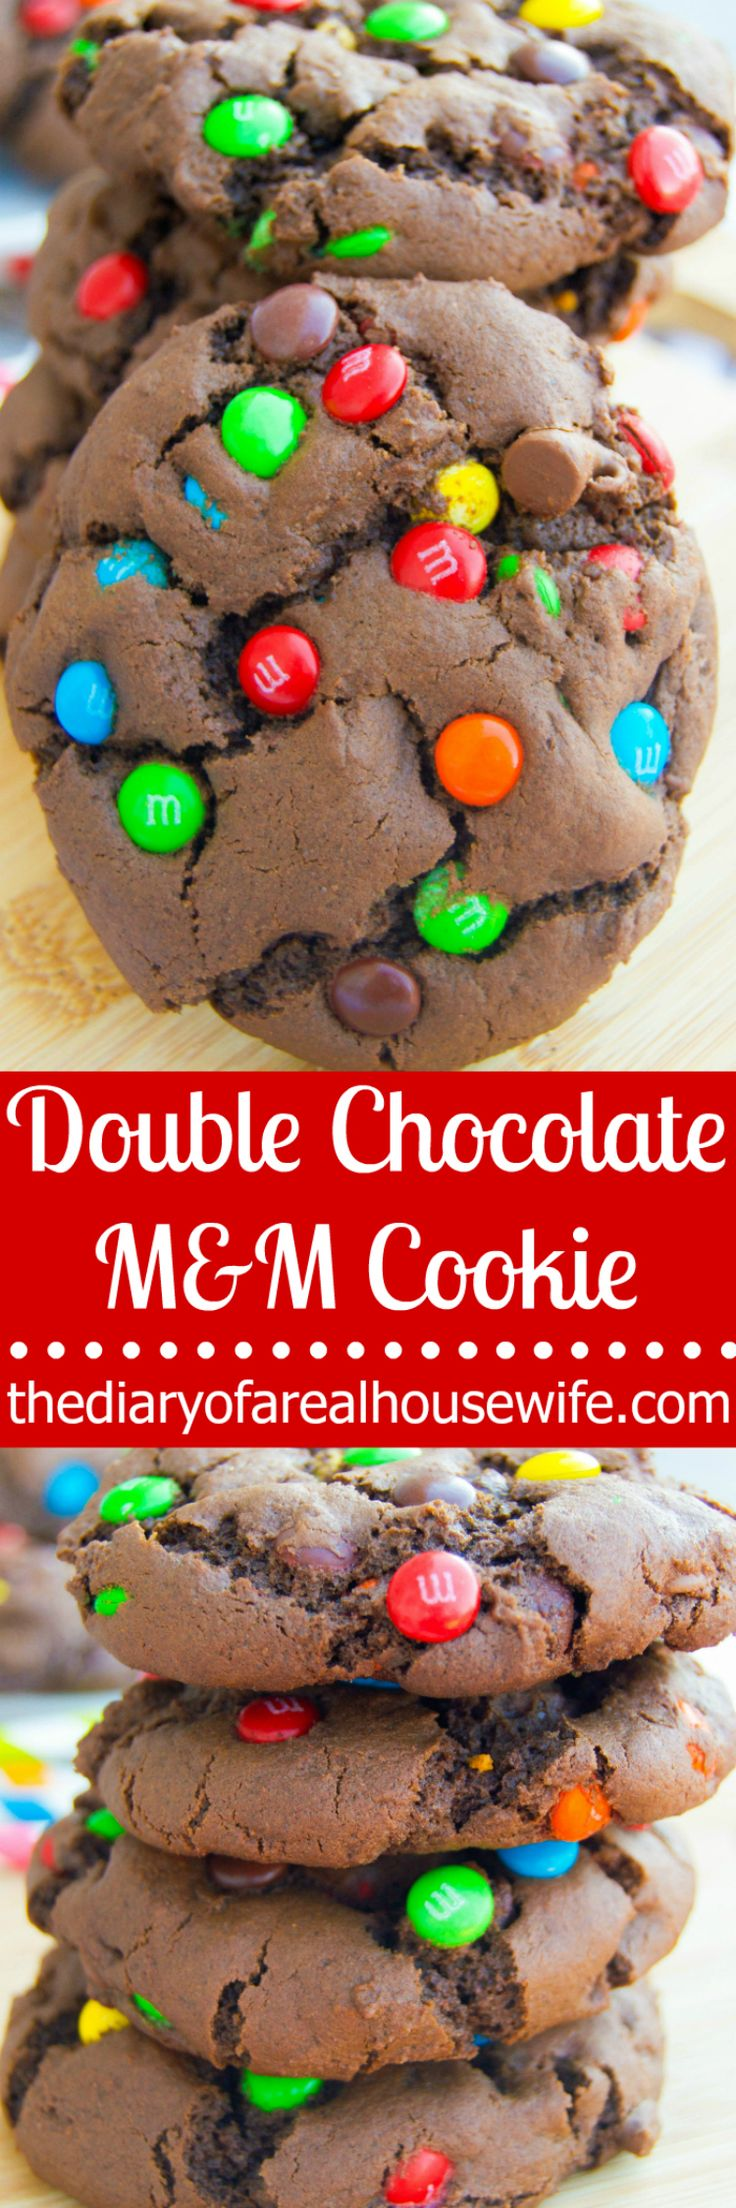 I may be bold and just say it.. this is the BEST cookie recipe!! Okay I am a big time chocolate and M&M fan but still it was so good!! Adding this recipe to my list of Christmas cookies this year. Double Chocolate M&M Cookie.